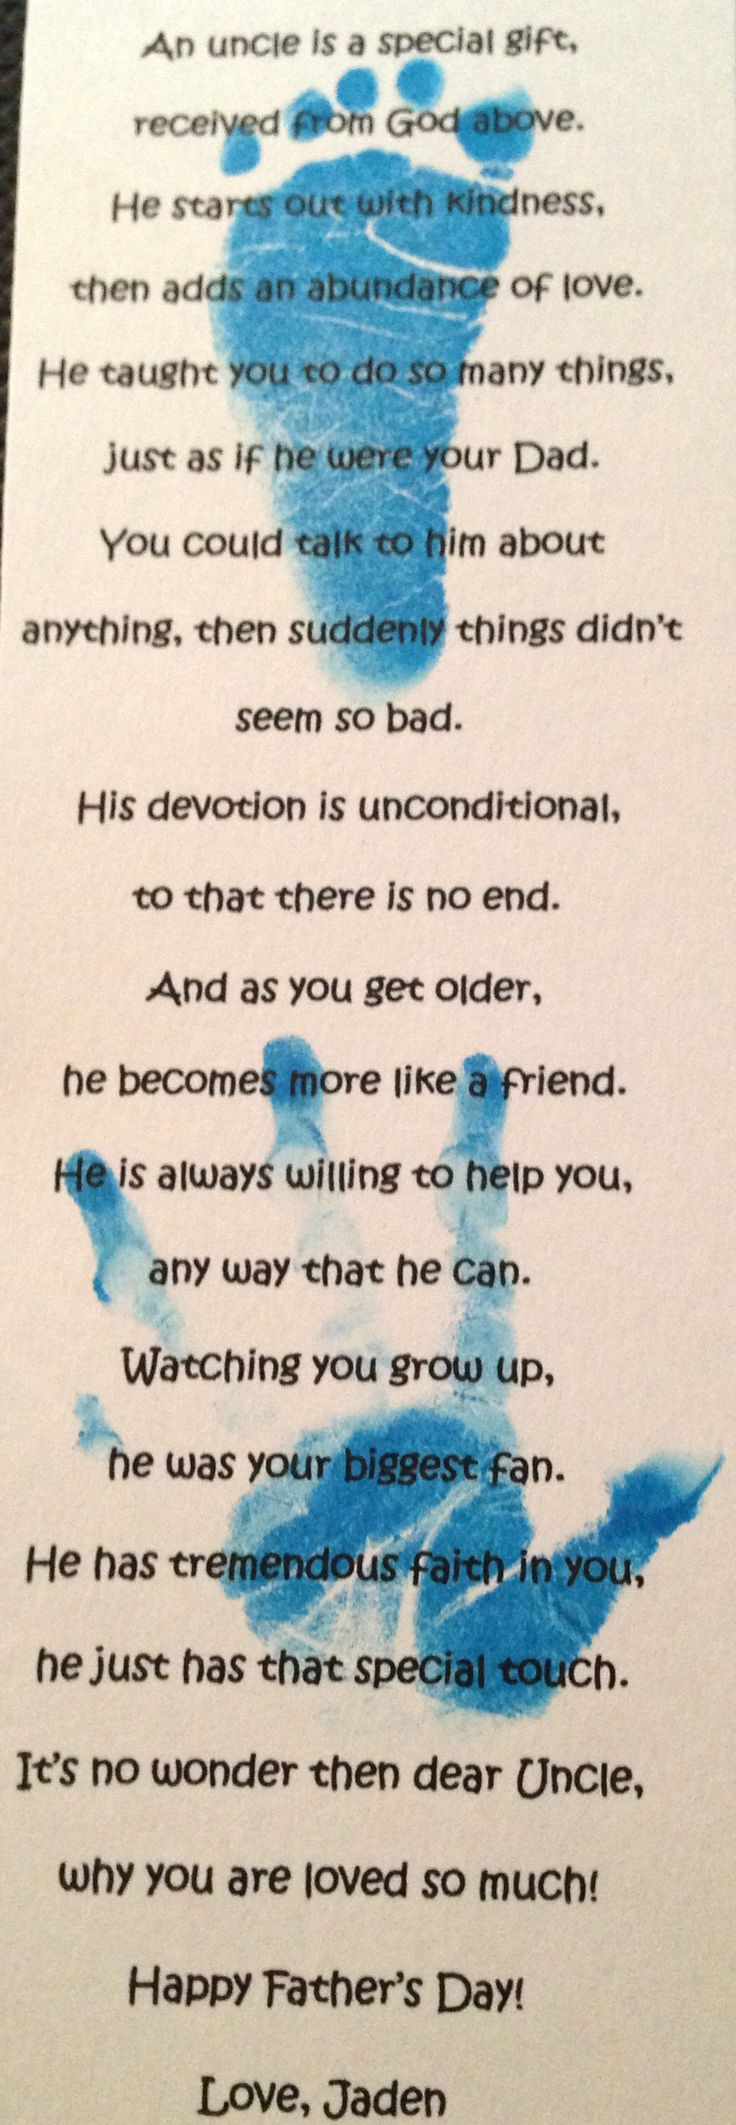 Quotes about An uncle (294 quotes)